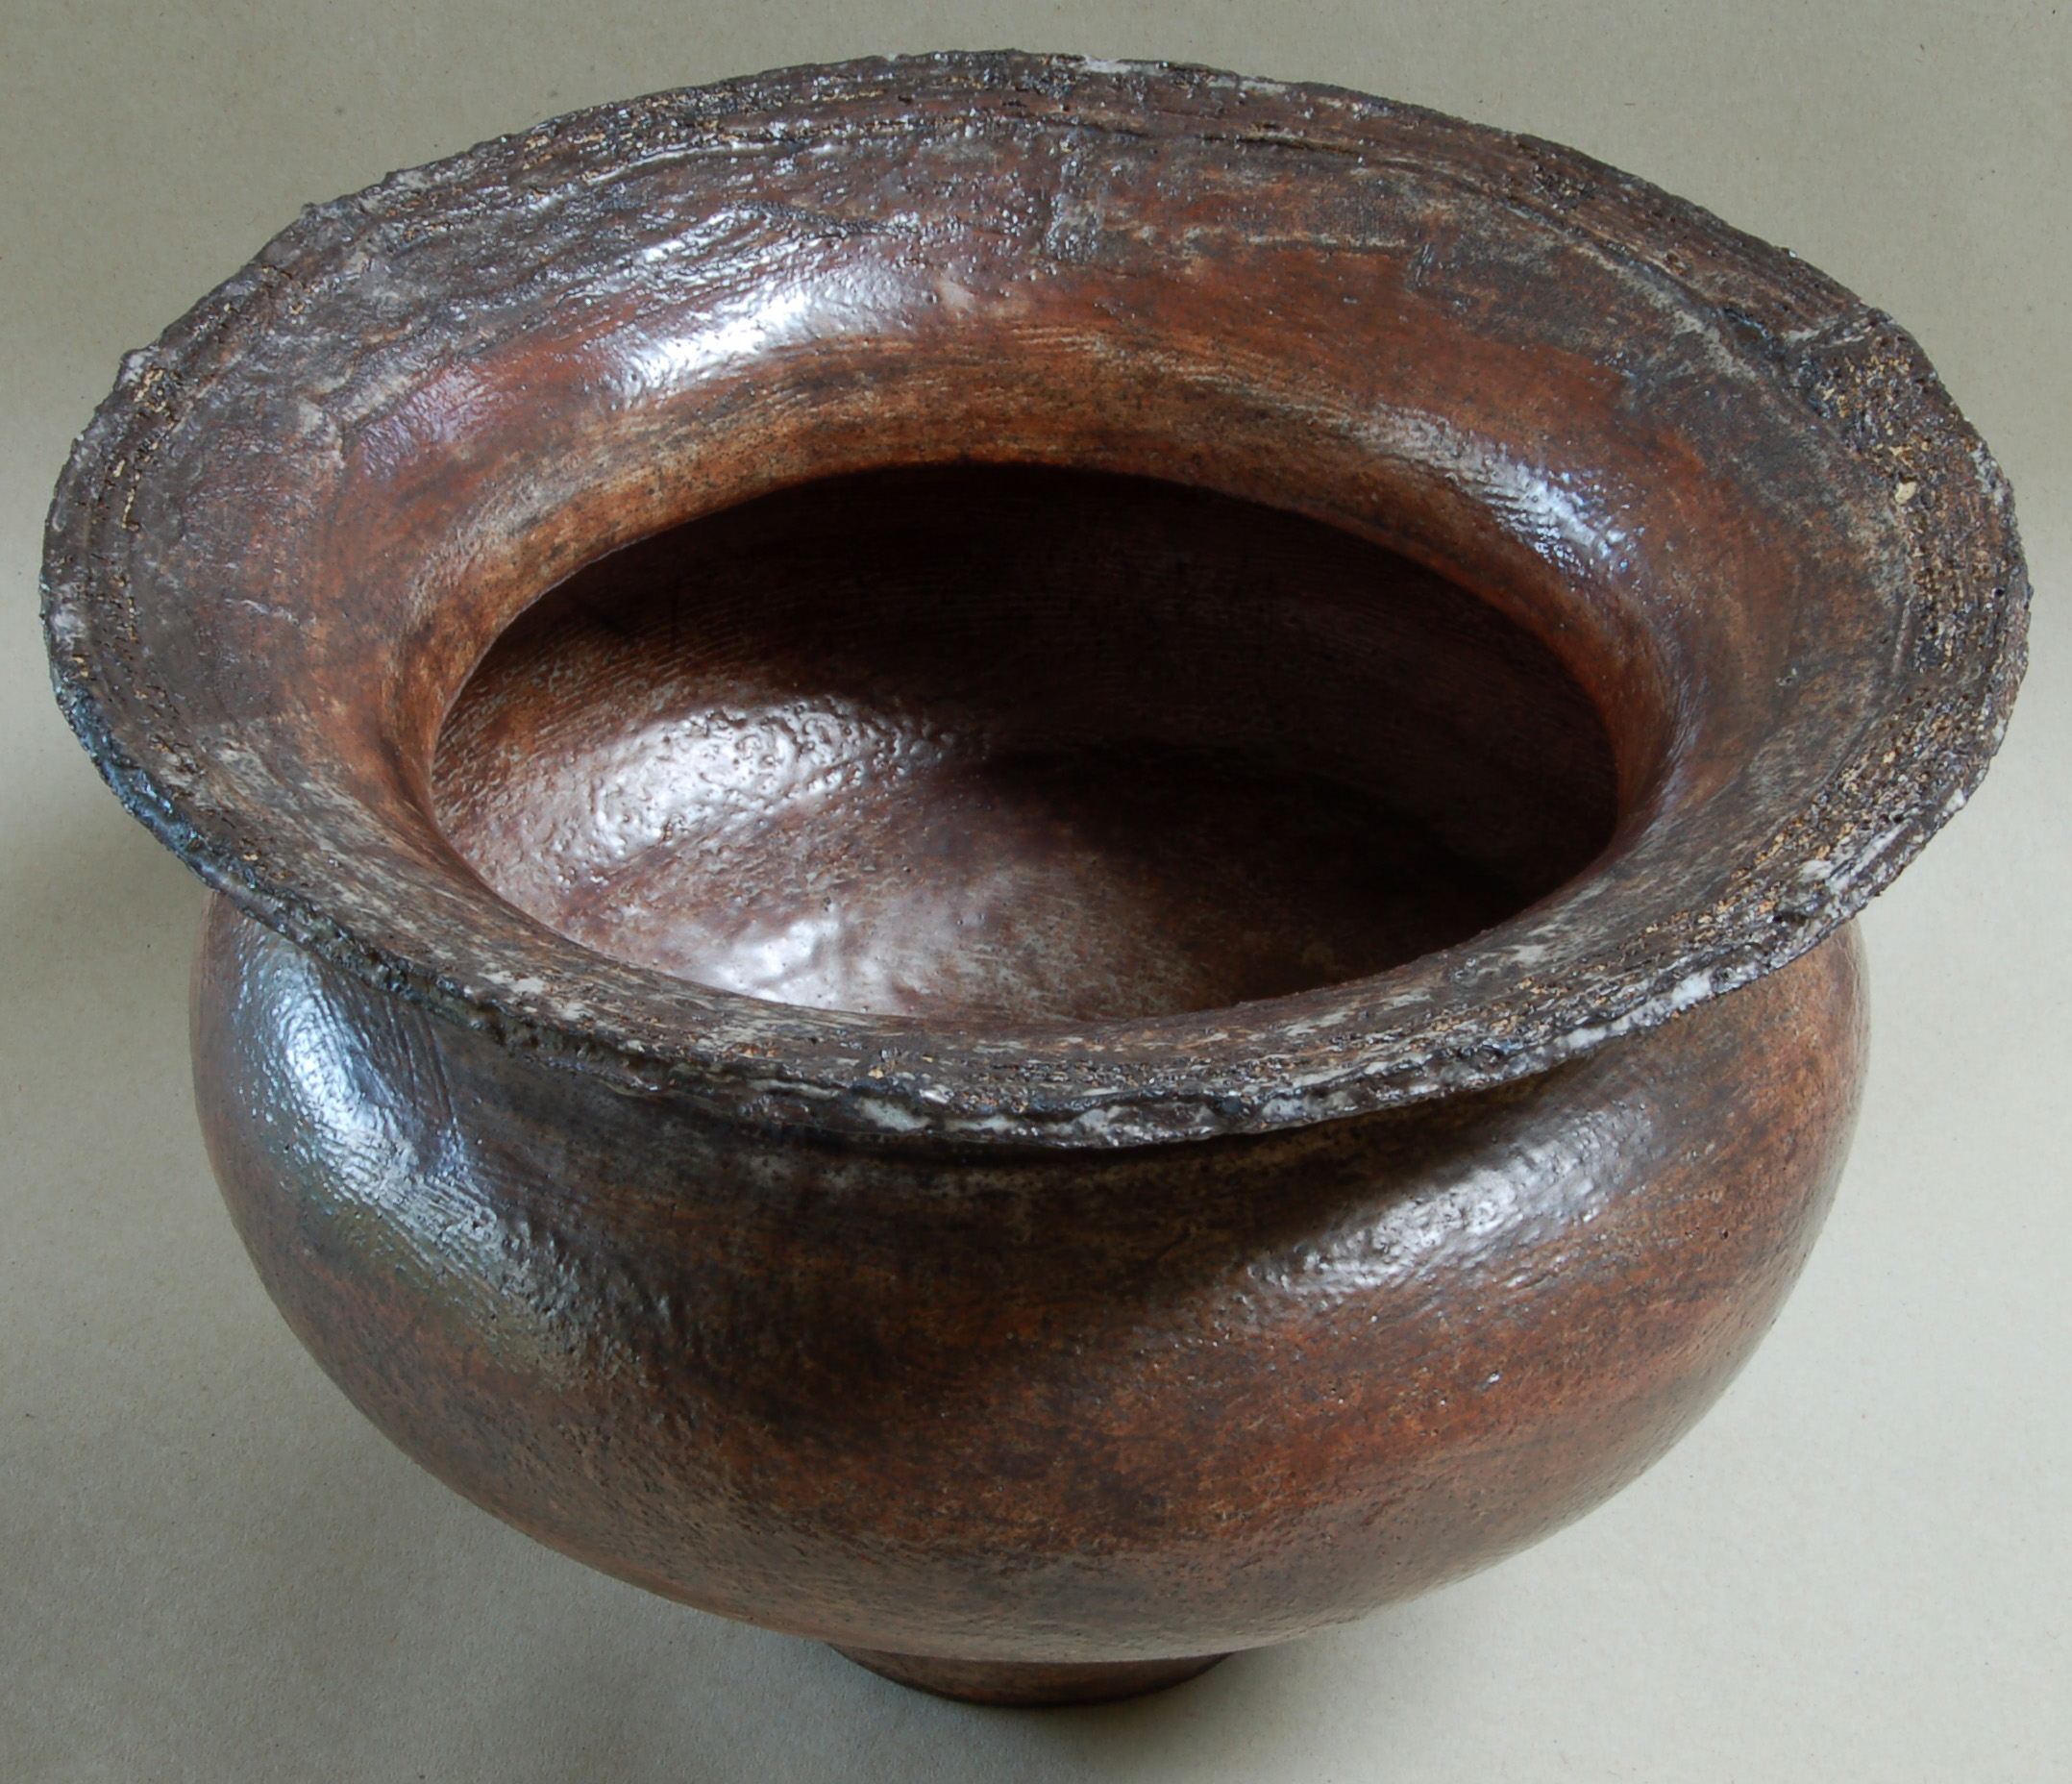 Large coiled pot